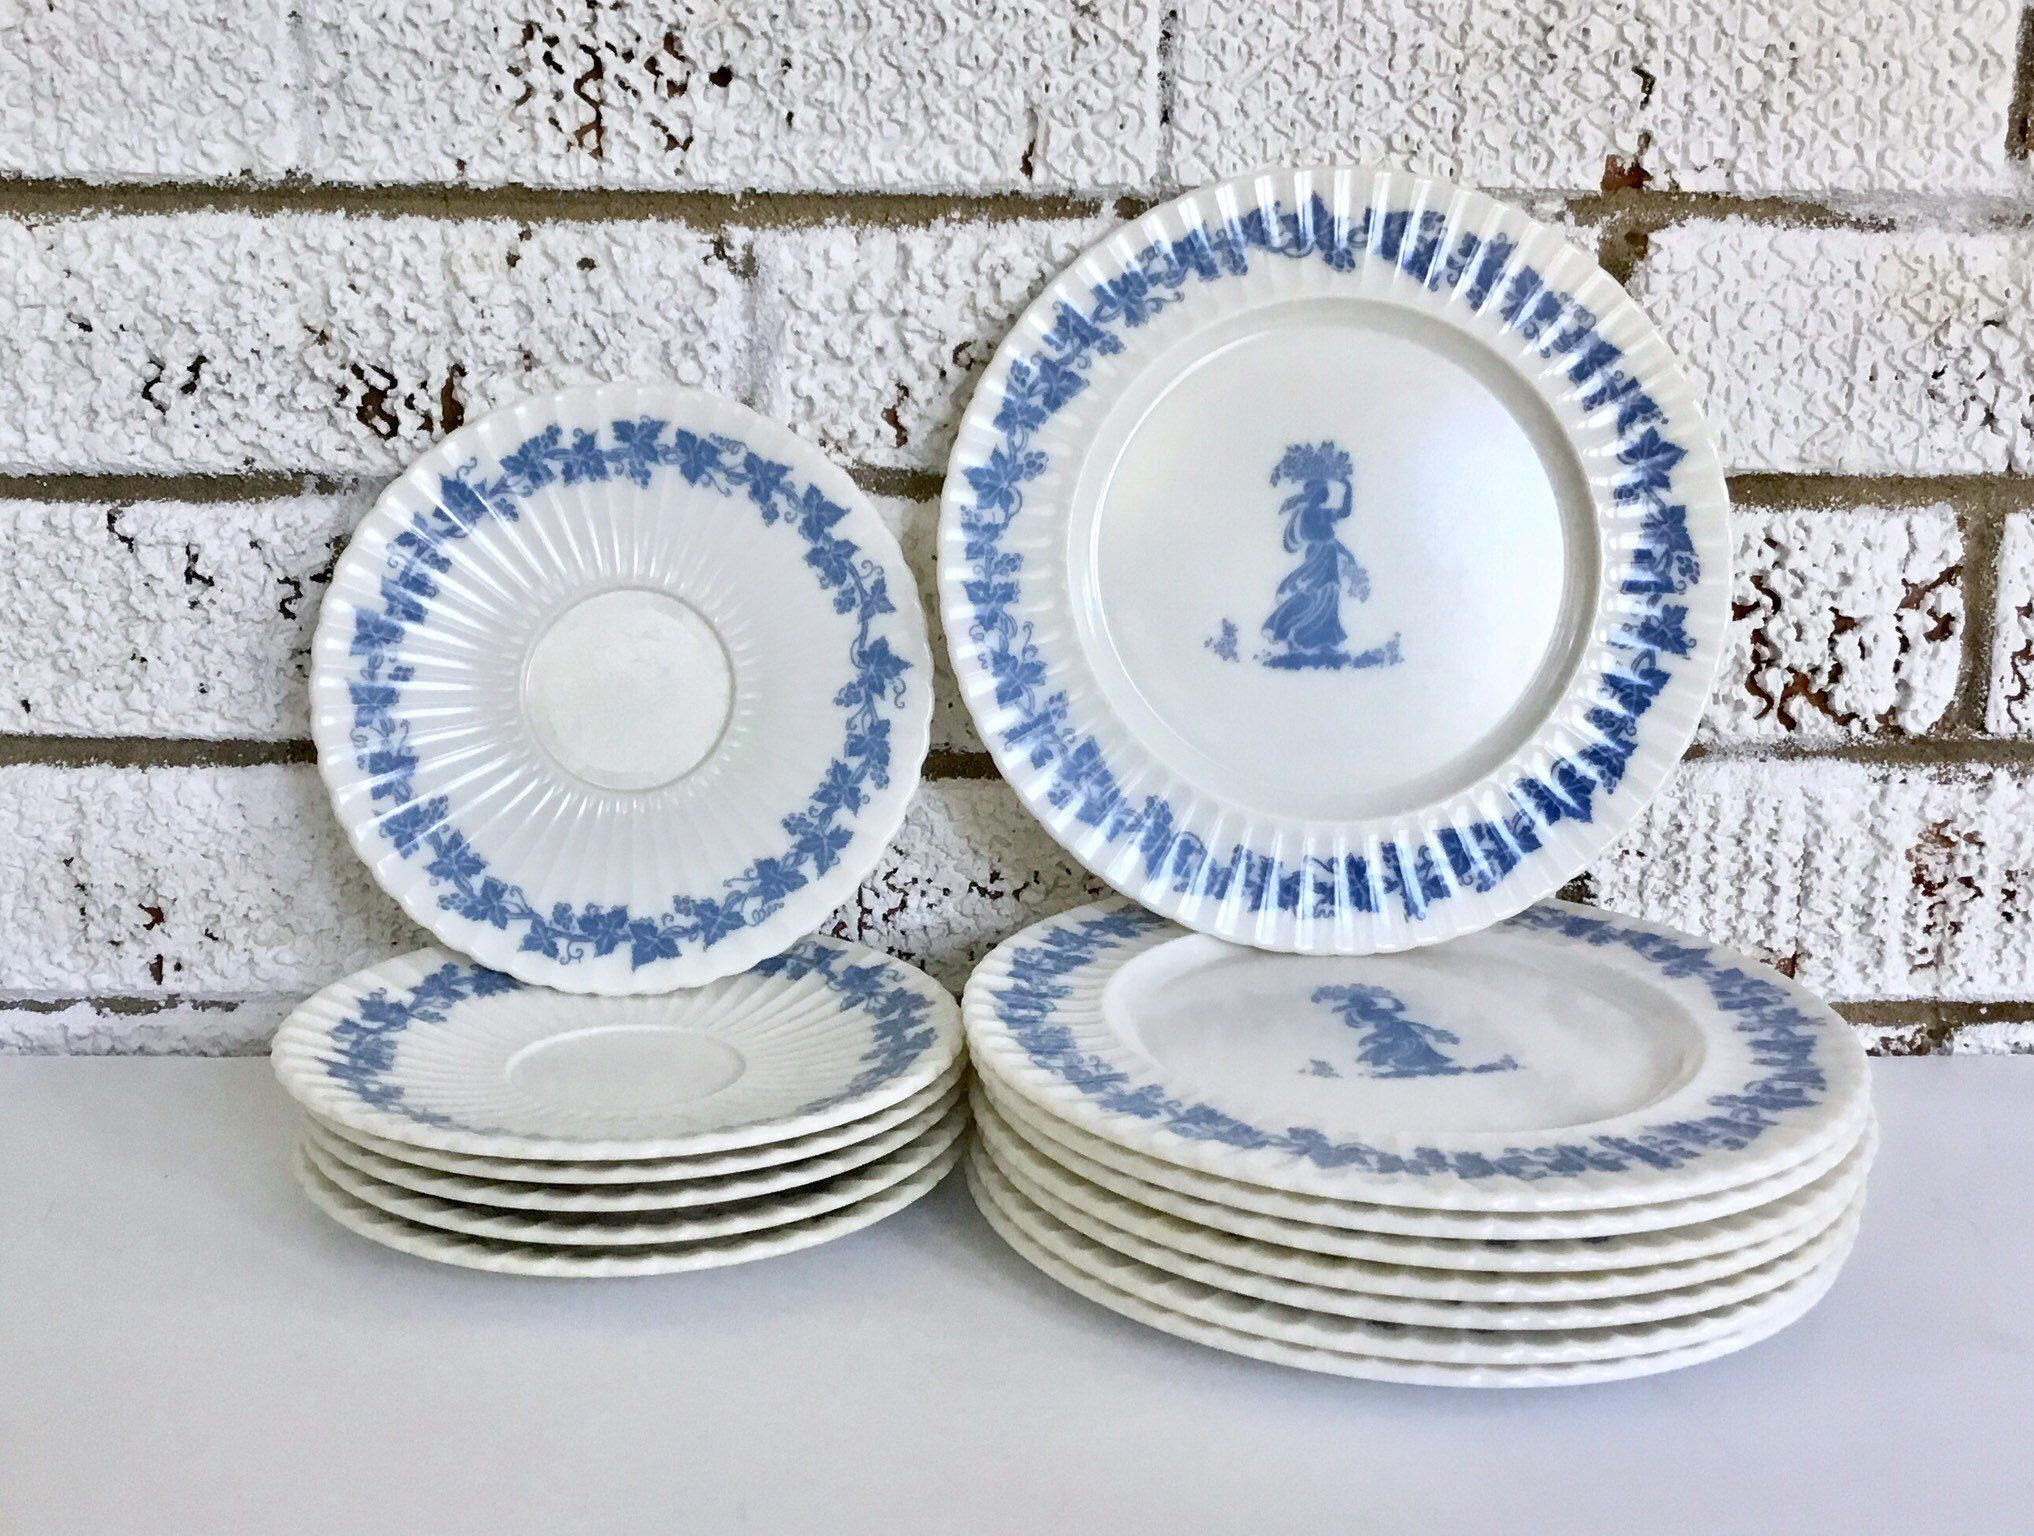 Vintage Wedgwood Style Classic By Mallory Melamine Dinnerware Plates By Dejavuvintiques On Etsy Https Www Etsy Com Listi Vintage House Handmade Classic Style